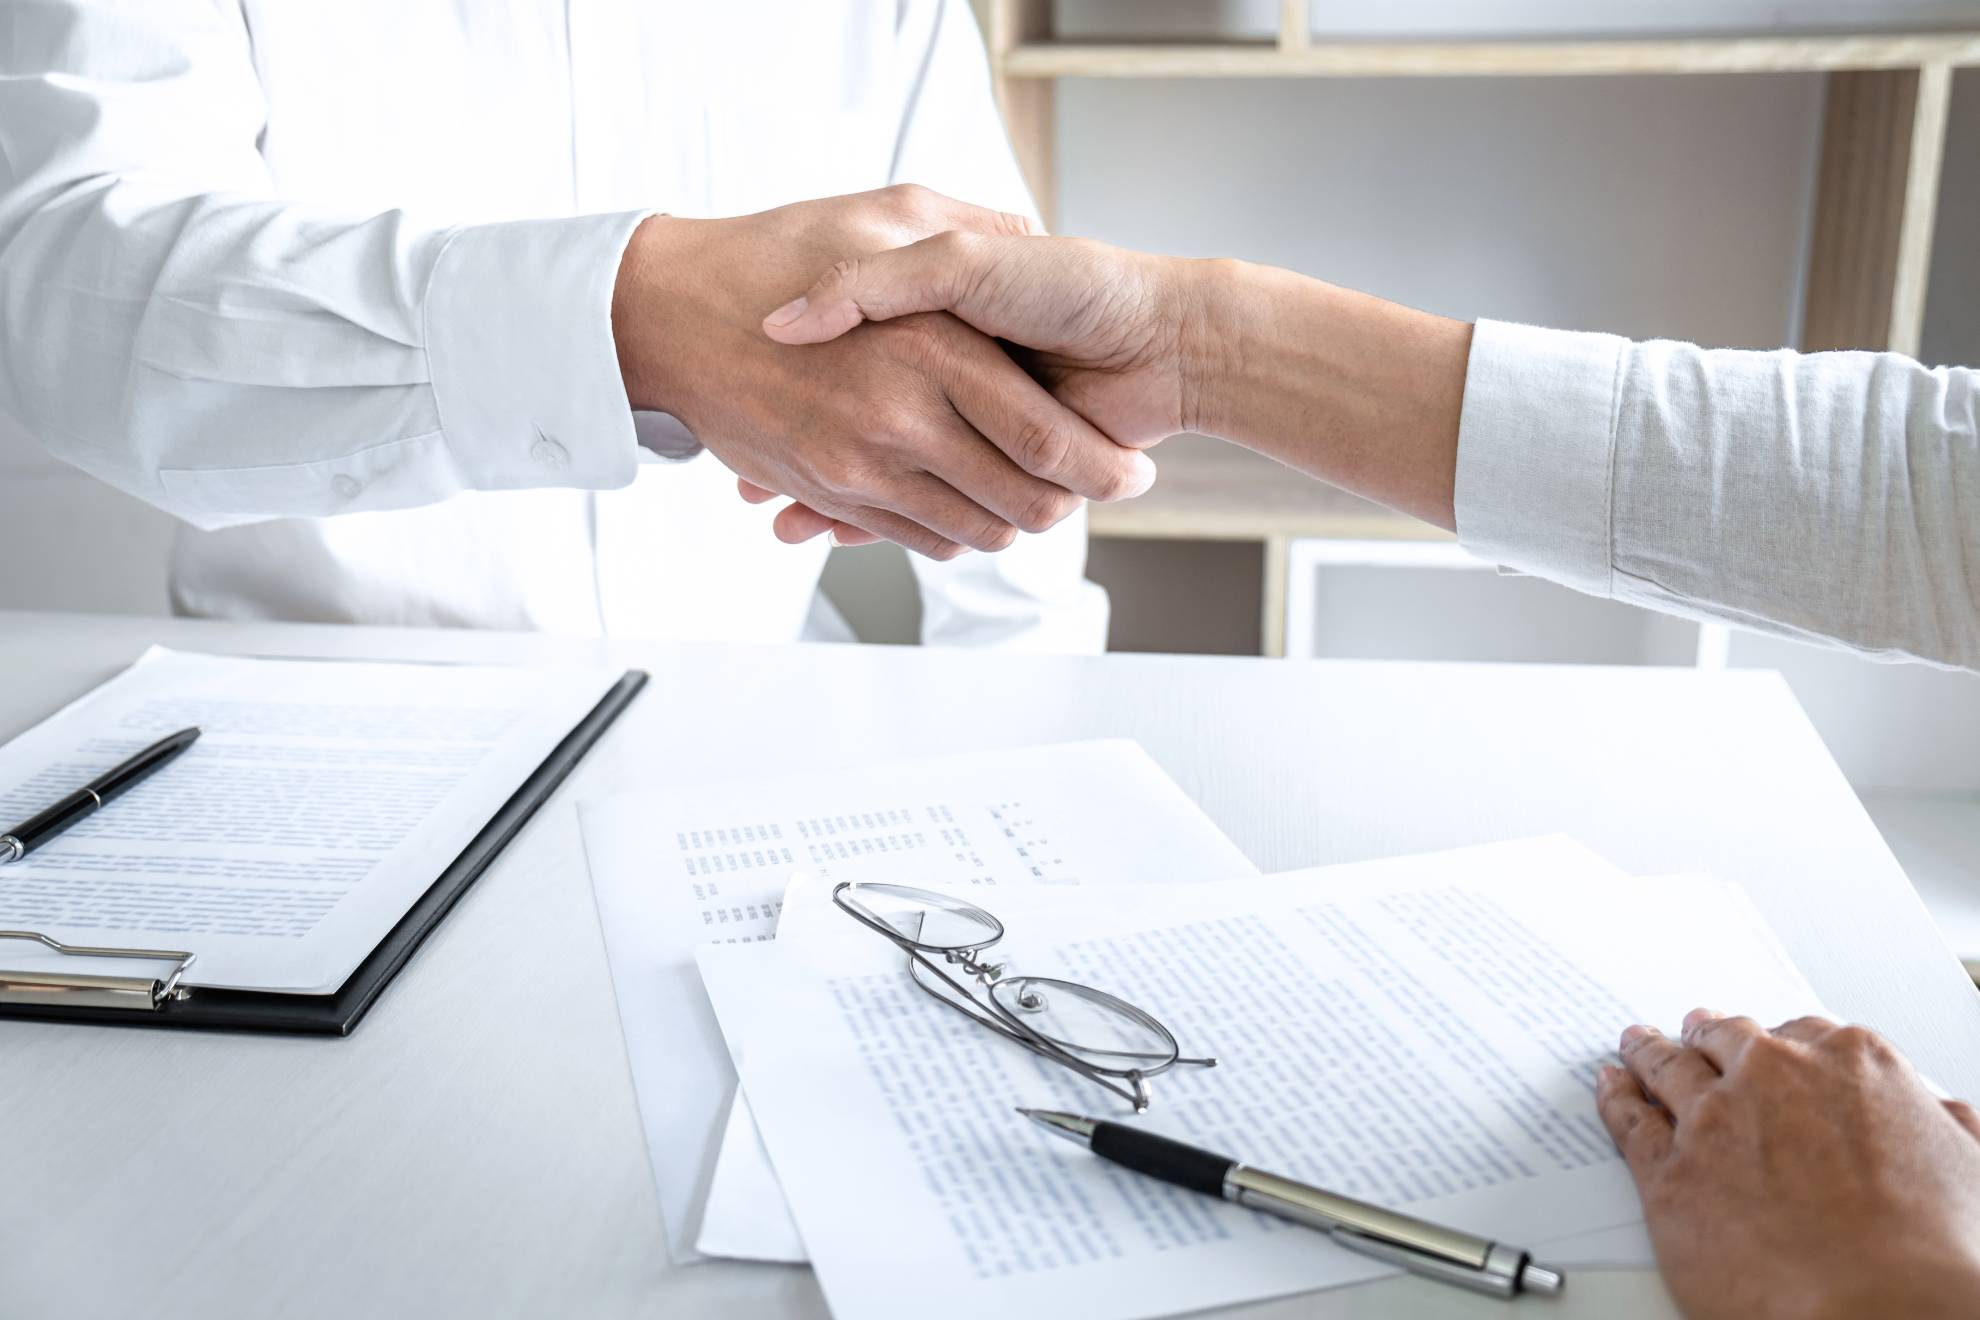 real-estate-broker-agent-and-customer-shaking-hand-9D3F2GM (1)